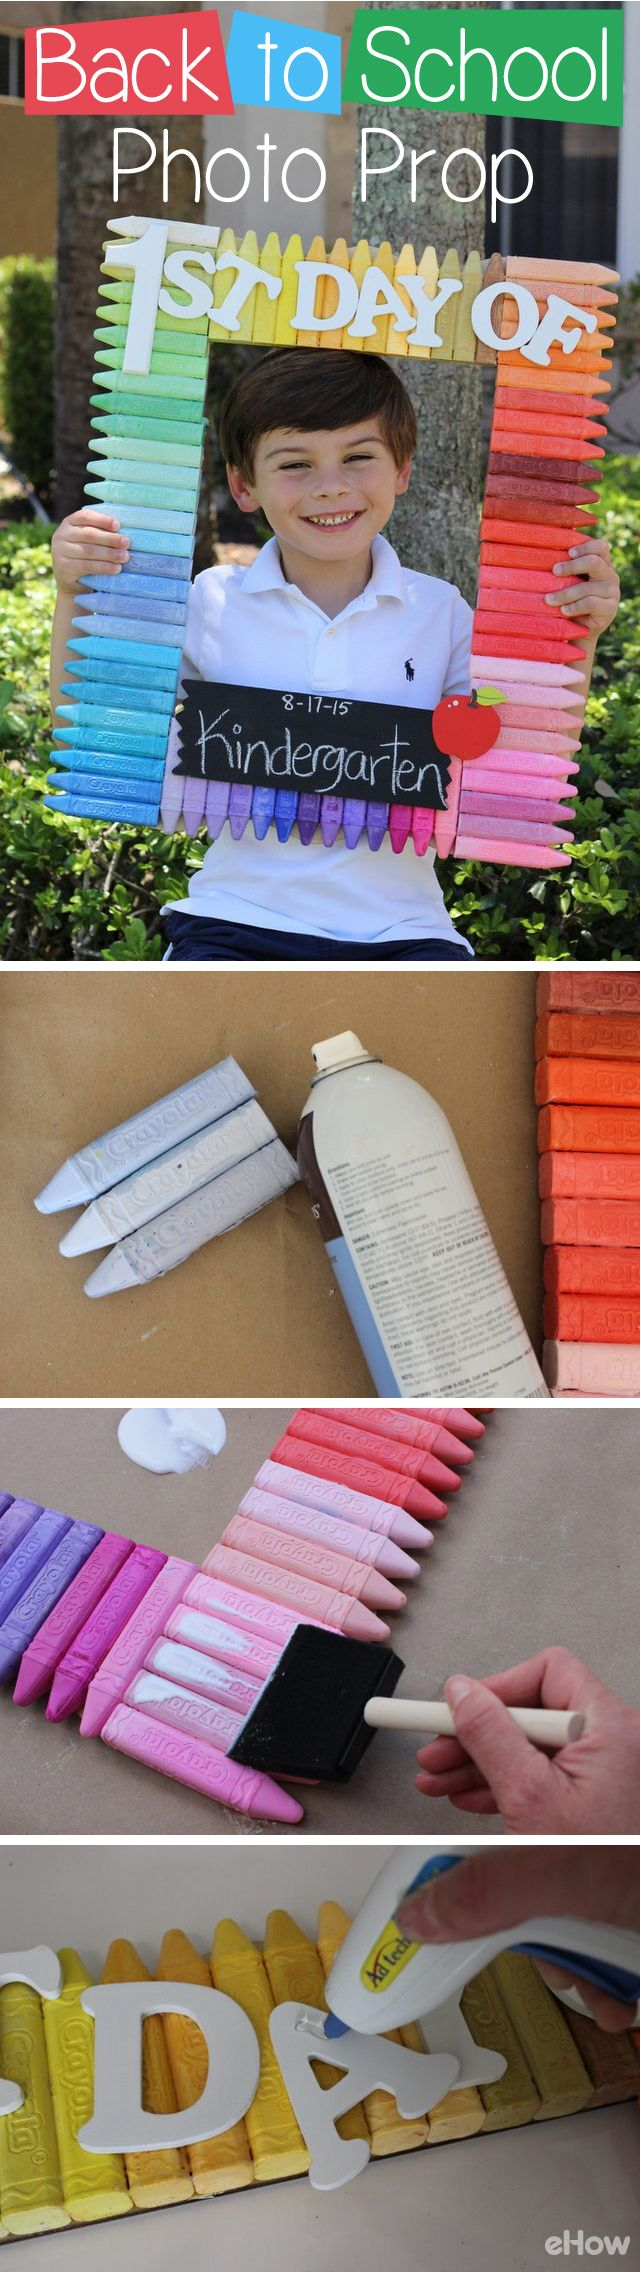 The first day of school is as exciting for parents as it is for kids, and if you're a mom who takes pictures each year of your child's first day of school, you're probably looking for a way to make it extra special. This easy back to school photo prop can be done in only 5 steps, and is a perfect summer craft to do with your kids. DIY here: http://www.ehow.com/how_12340644_diy-back-school-photo-prop.html?utm_source=pinterest.com&utm_medium=referral&utm_content=freestyle&utm_campaign=fanpage